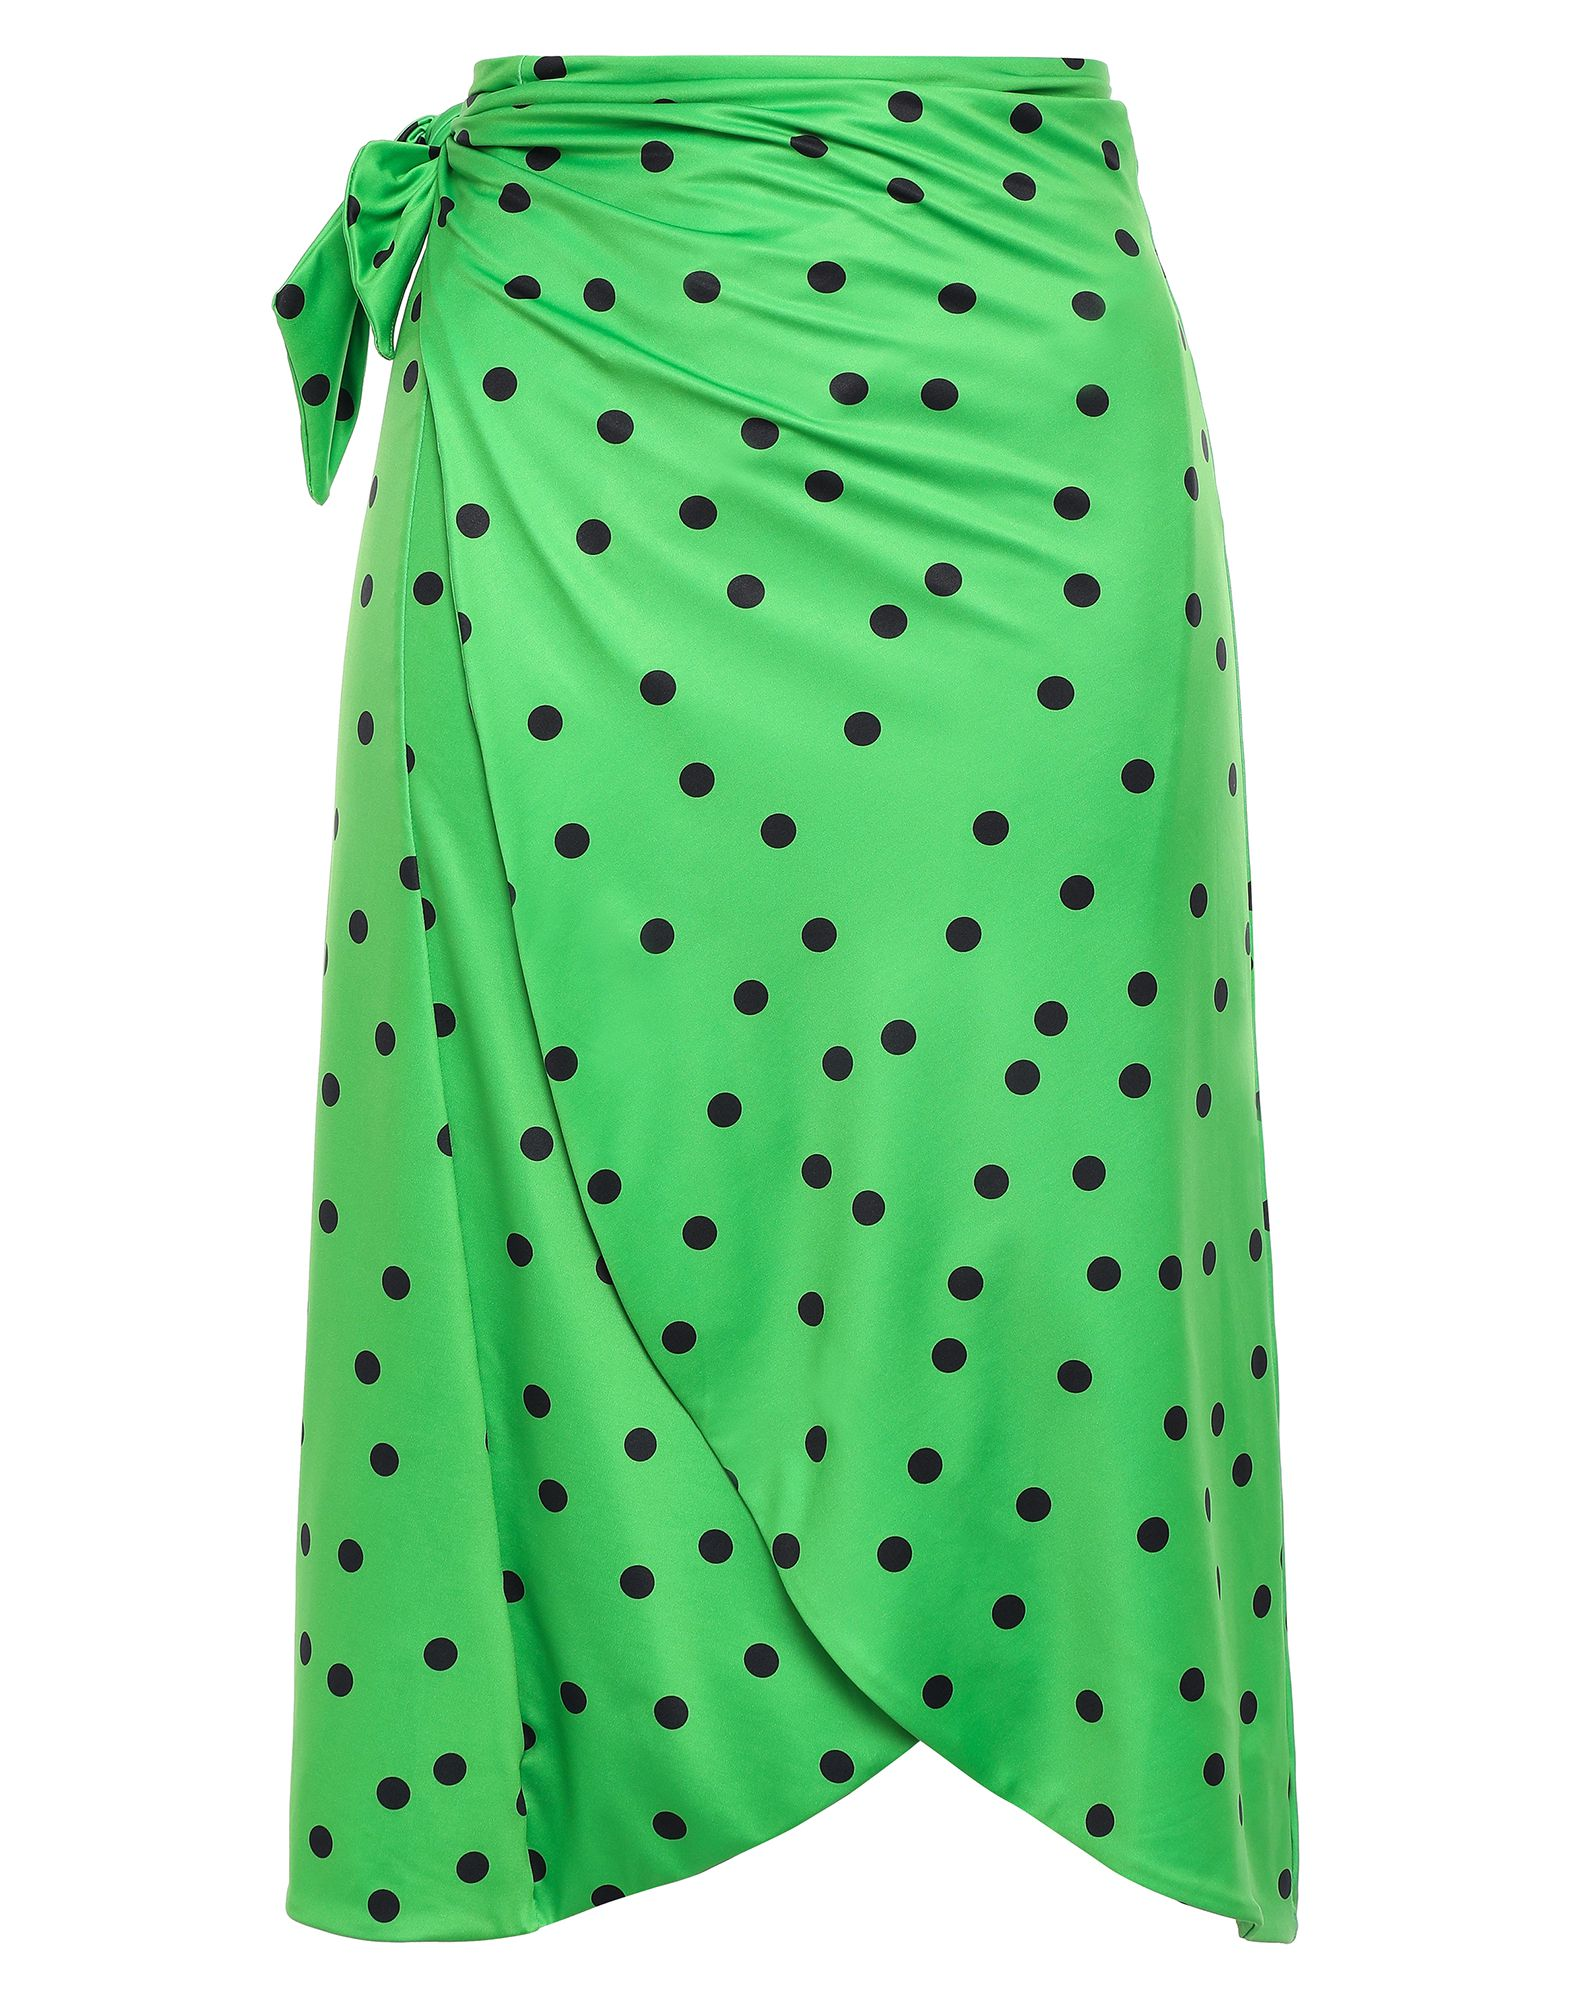 GANNI Sarongs. synthetic jersey, no appliqués, polka-dot, side closure, no pockets, self-tie wrap closure, fully lined, stretch. 82% Polyester, 18% Elastane